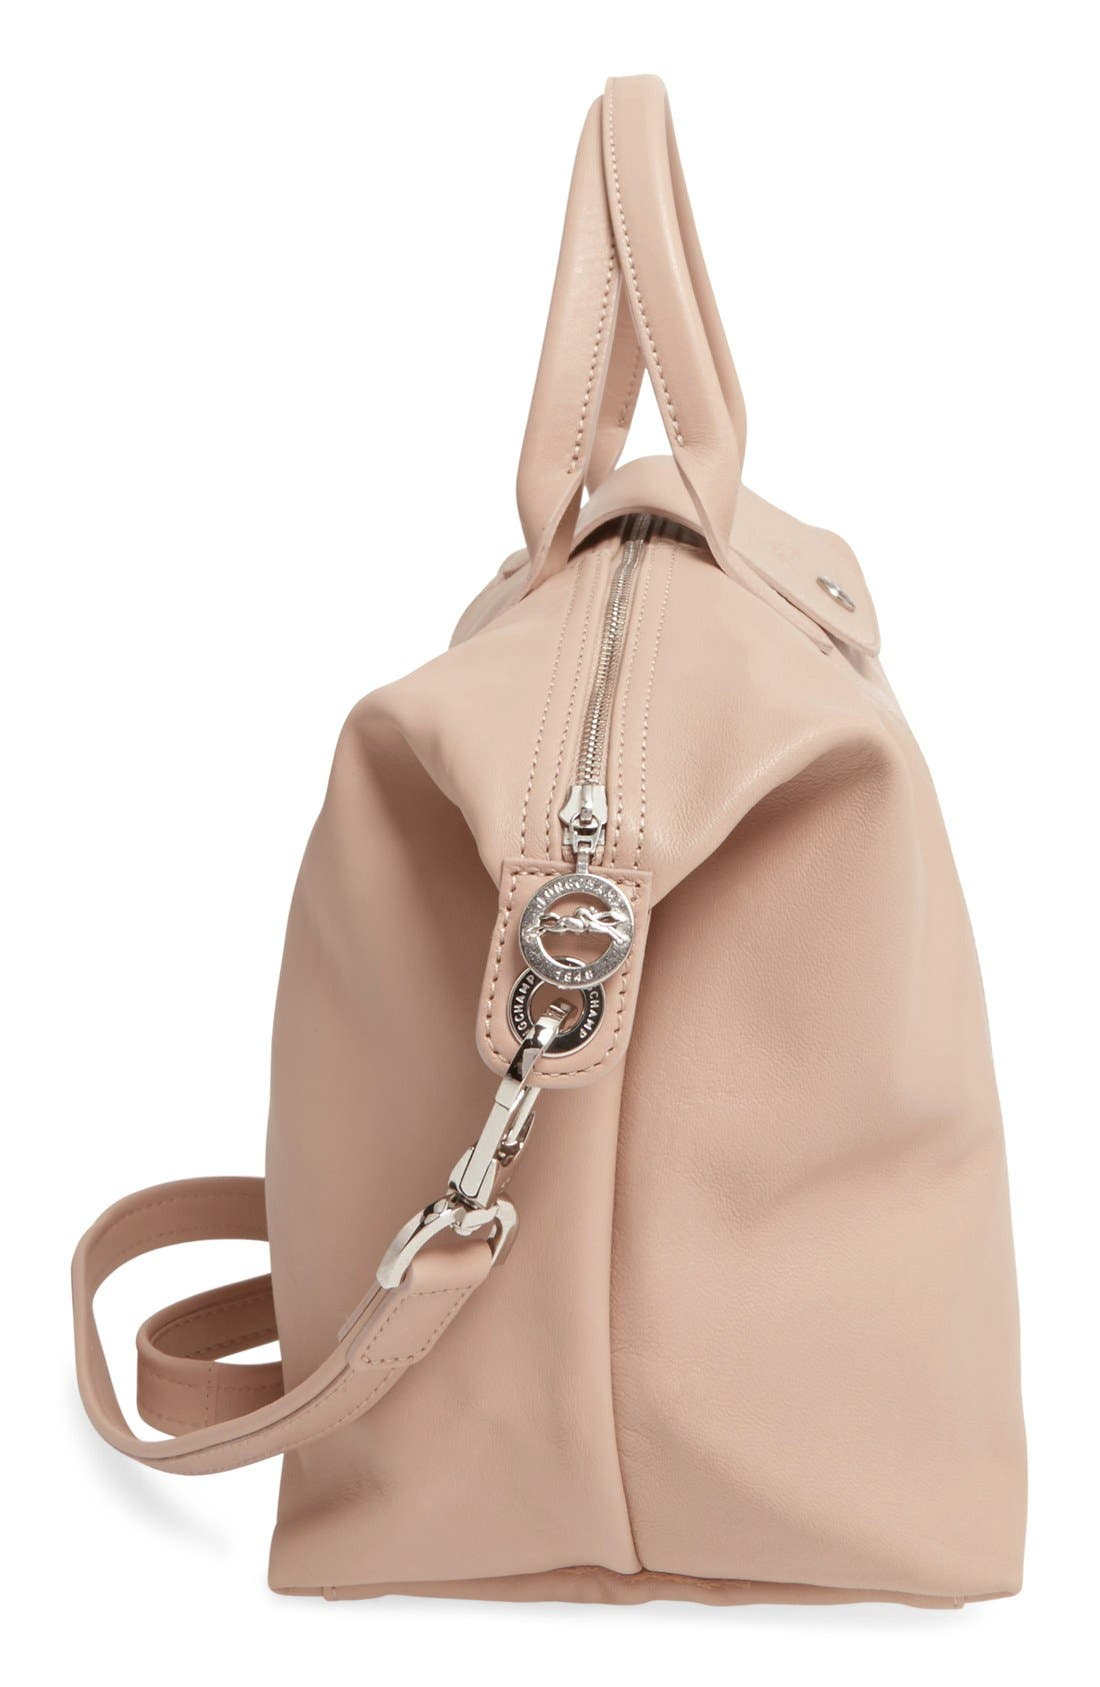 Medium 'Le Pliage Cuir' Leather Top Handle Tote,                             Alternate thumbnail 94, color,